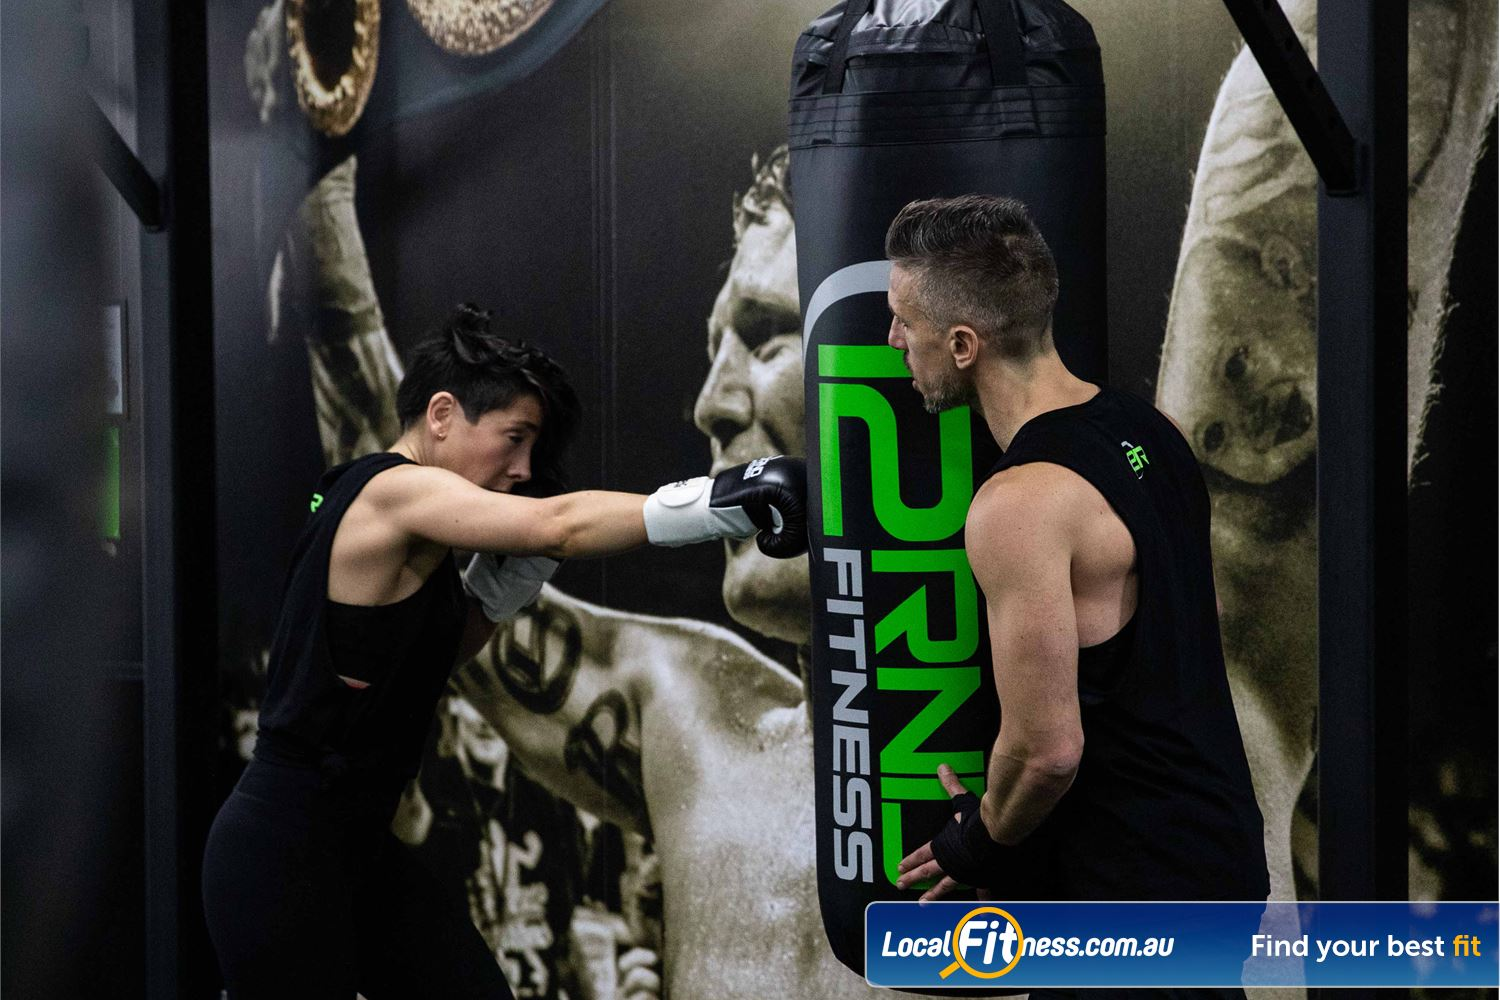 12 Round Fitness Near Canterbury A new dynamic program every session keeps things fast, fun and never boring.